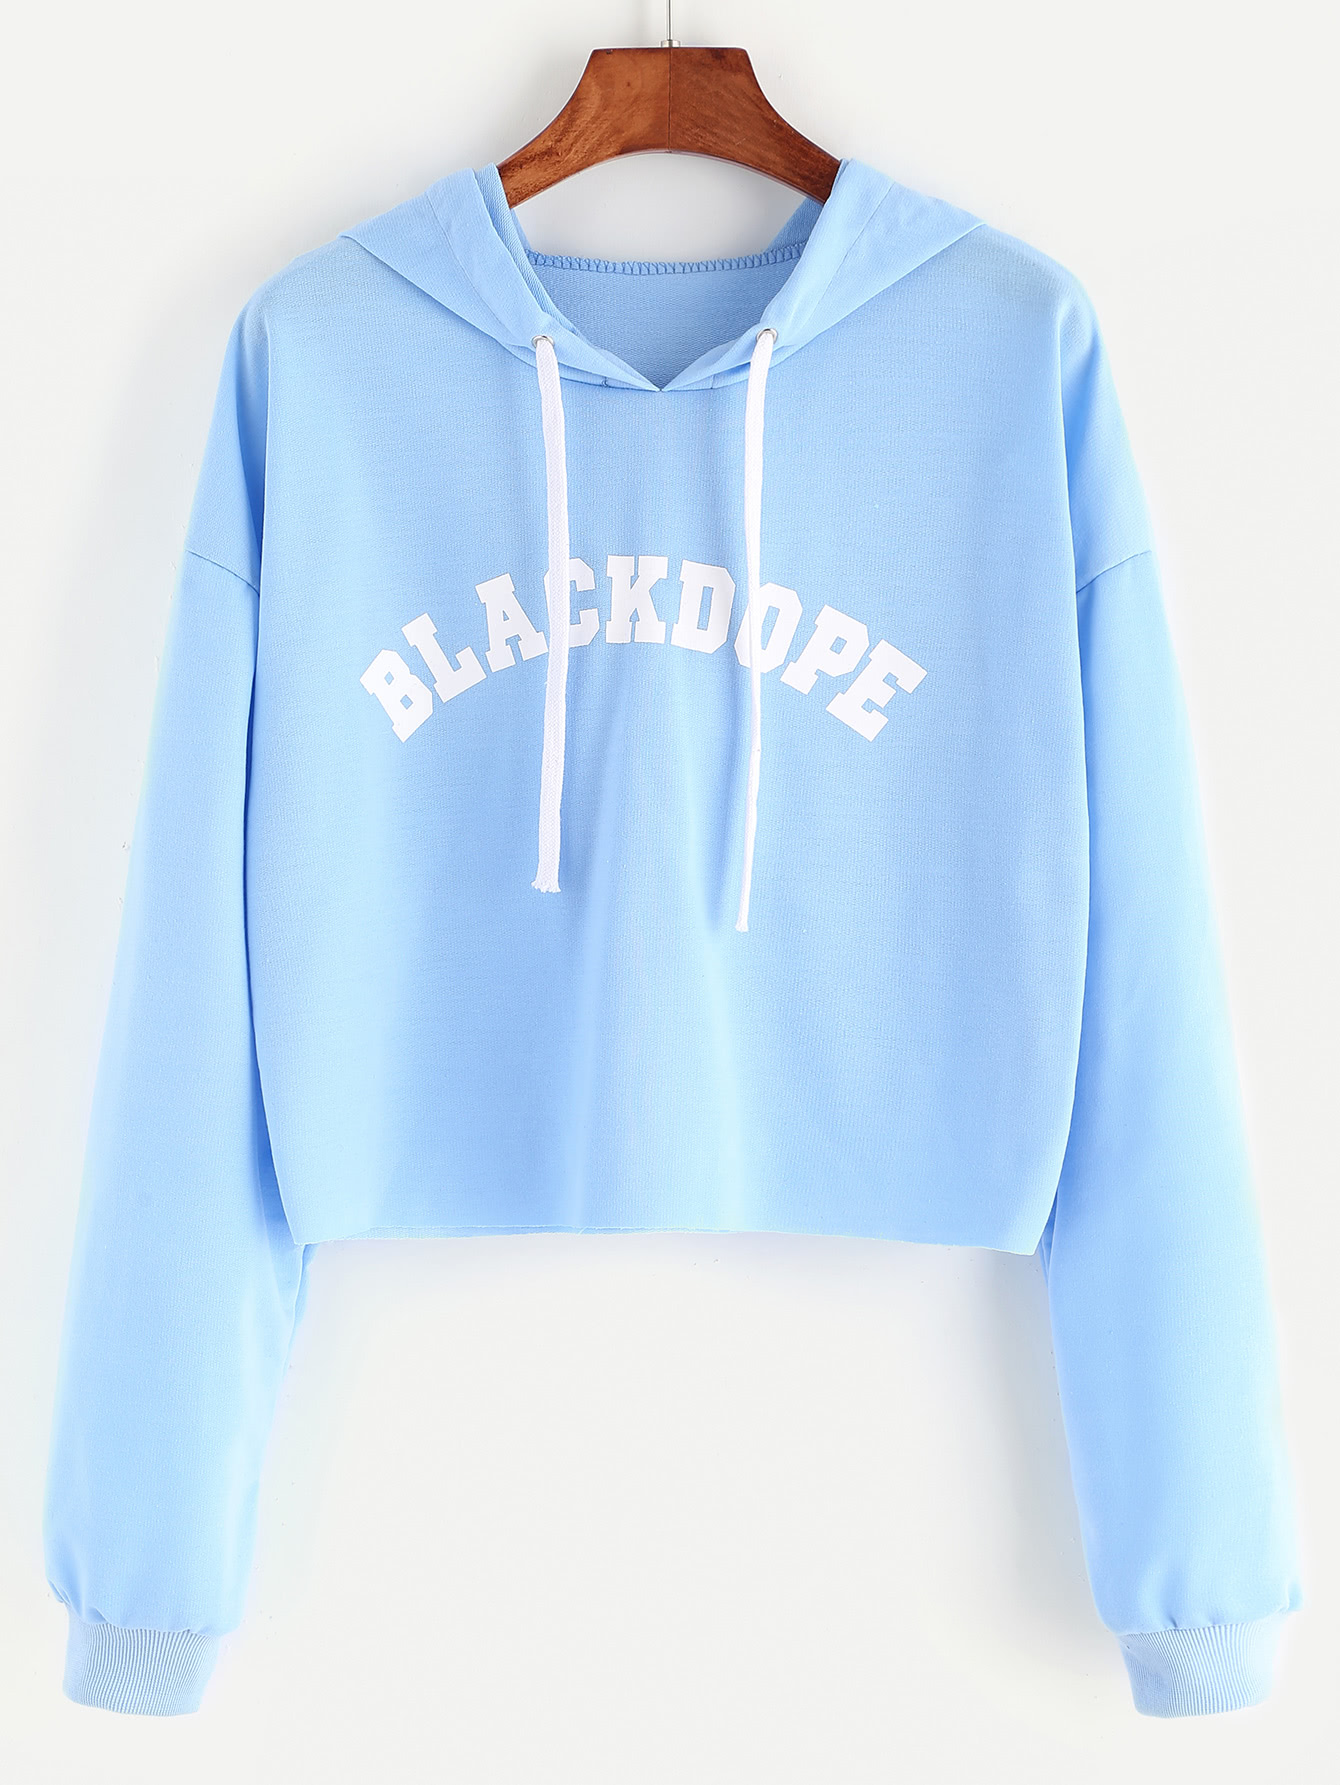 Blue Hooded Letter Print Raw Hem Crop Sweatshirt sweatshirt170215101